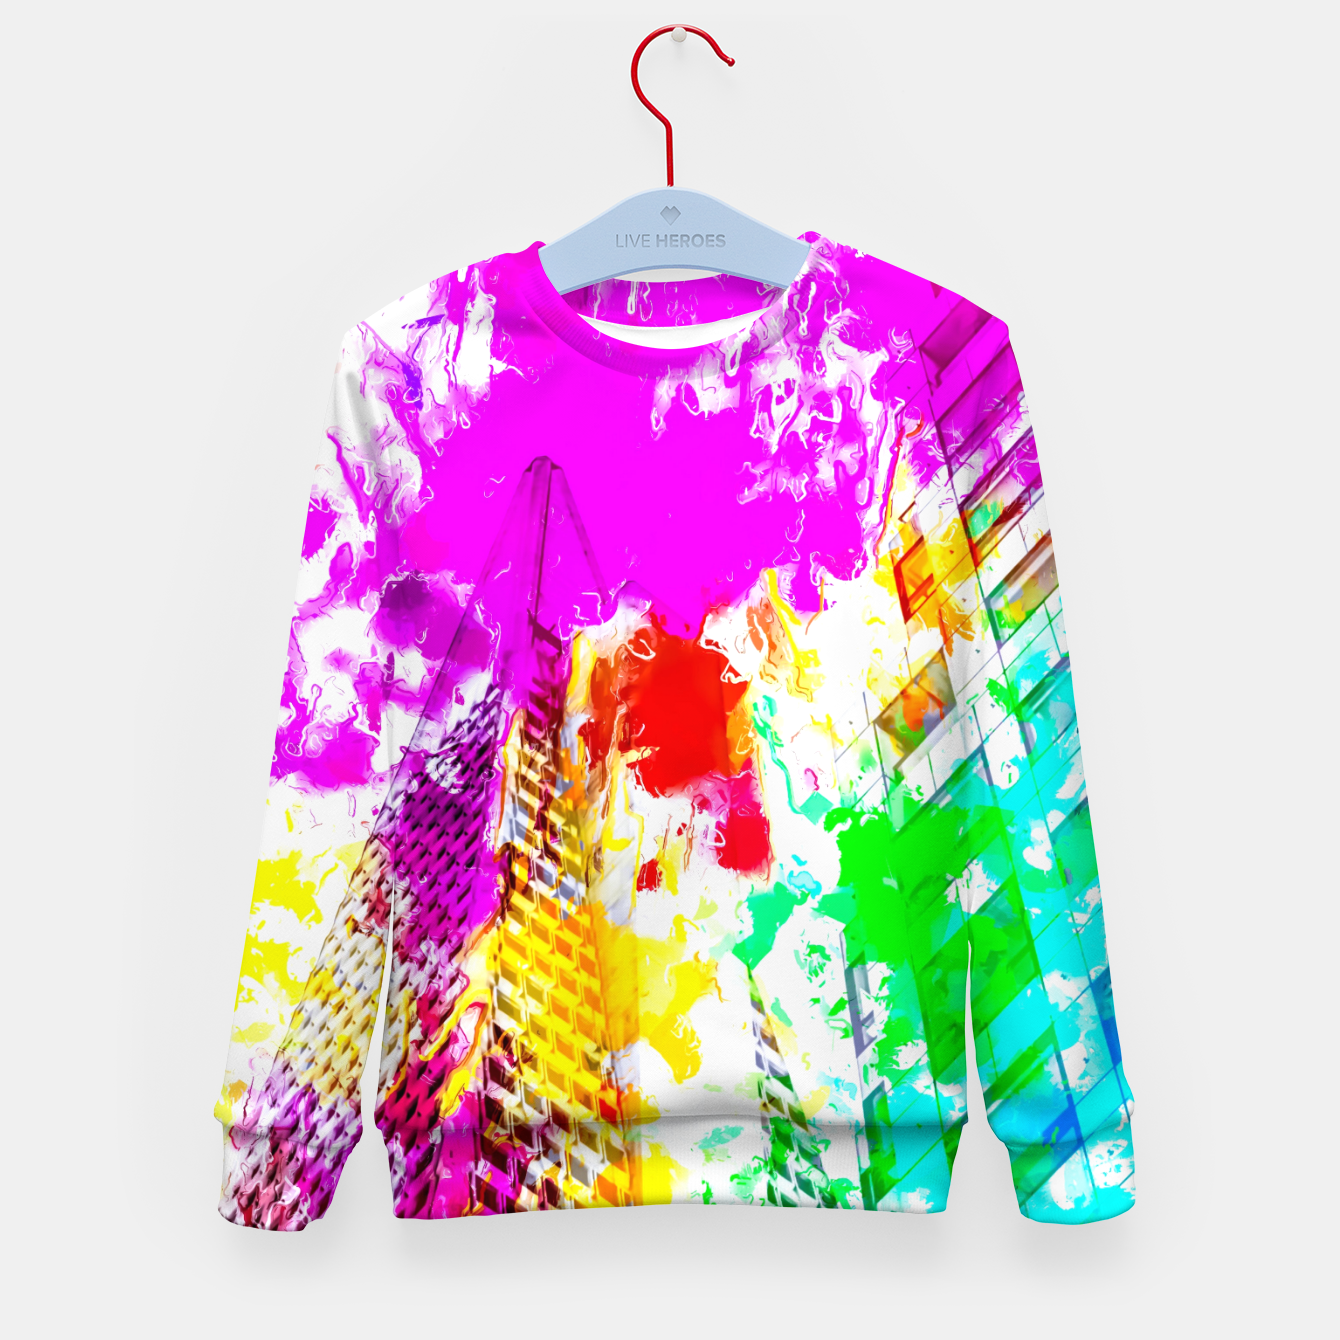 Image of pyramid building and modern building exterior at San Francisco, USA with colorful painting abstract background Kid's sweater - Live Heroes